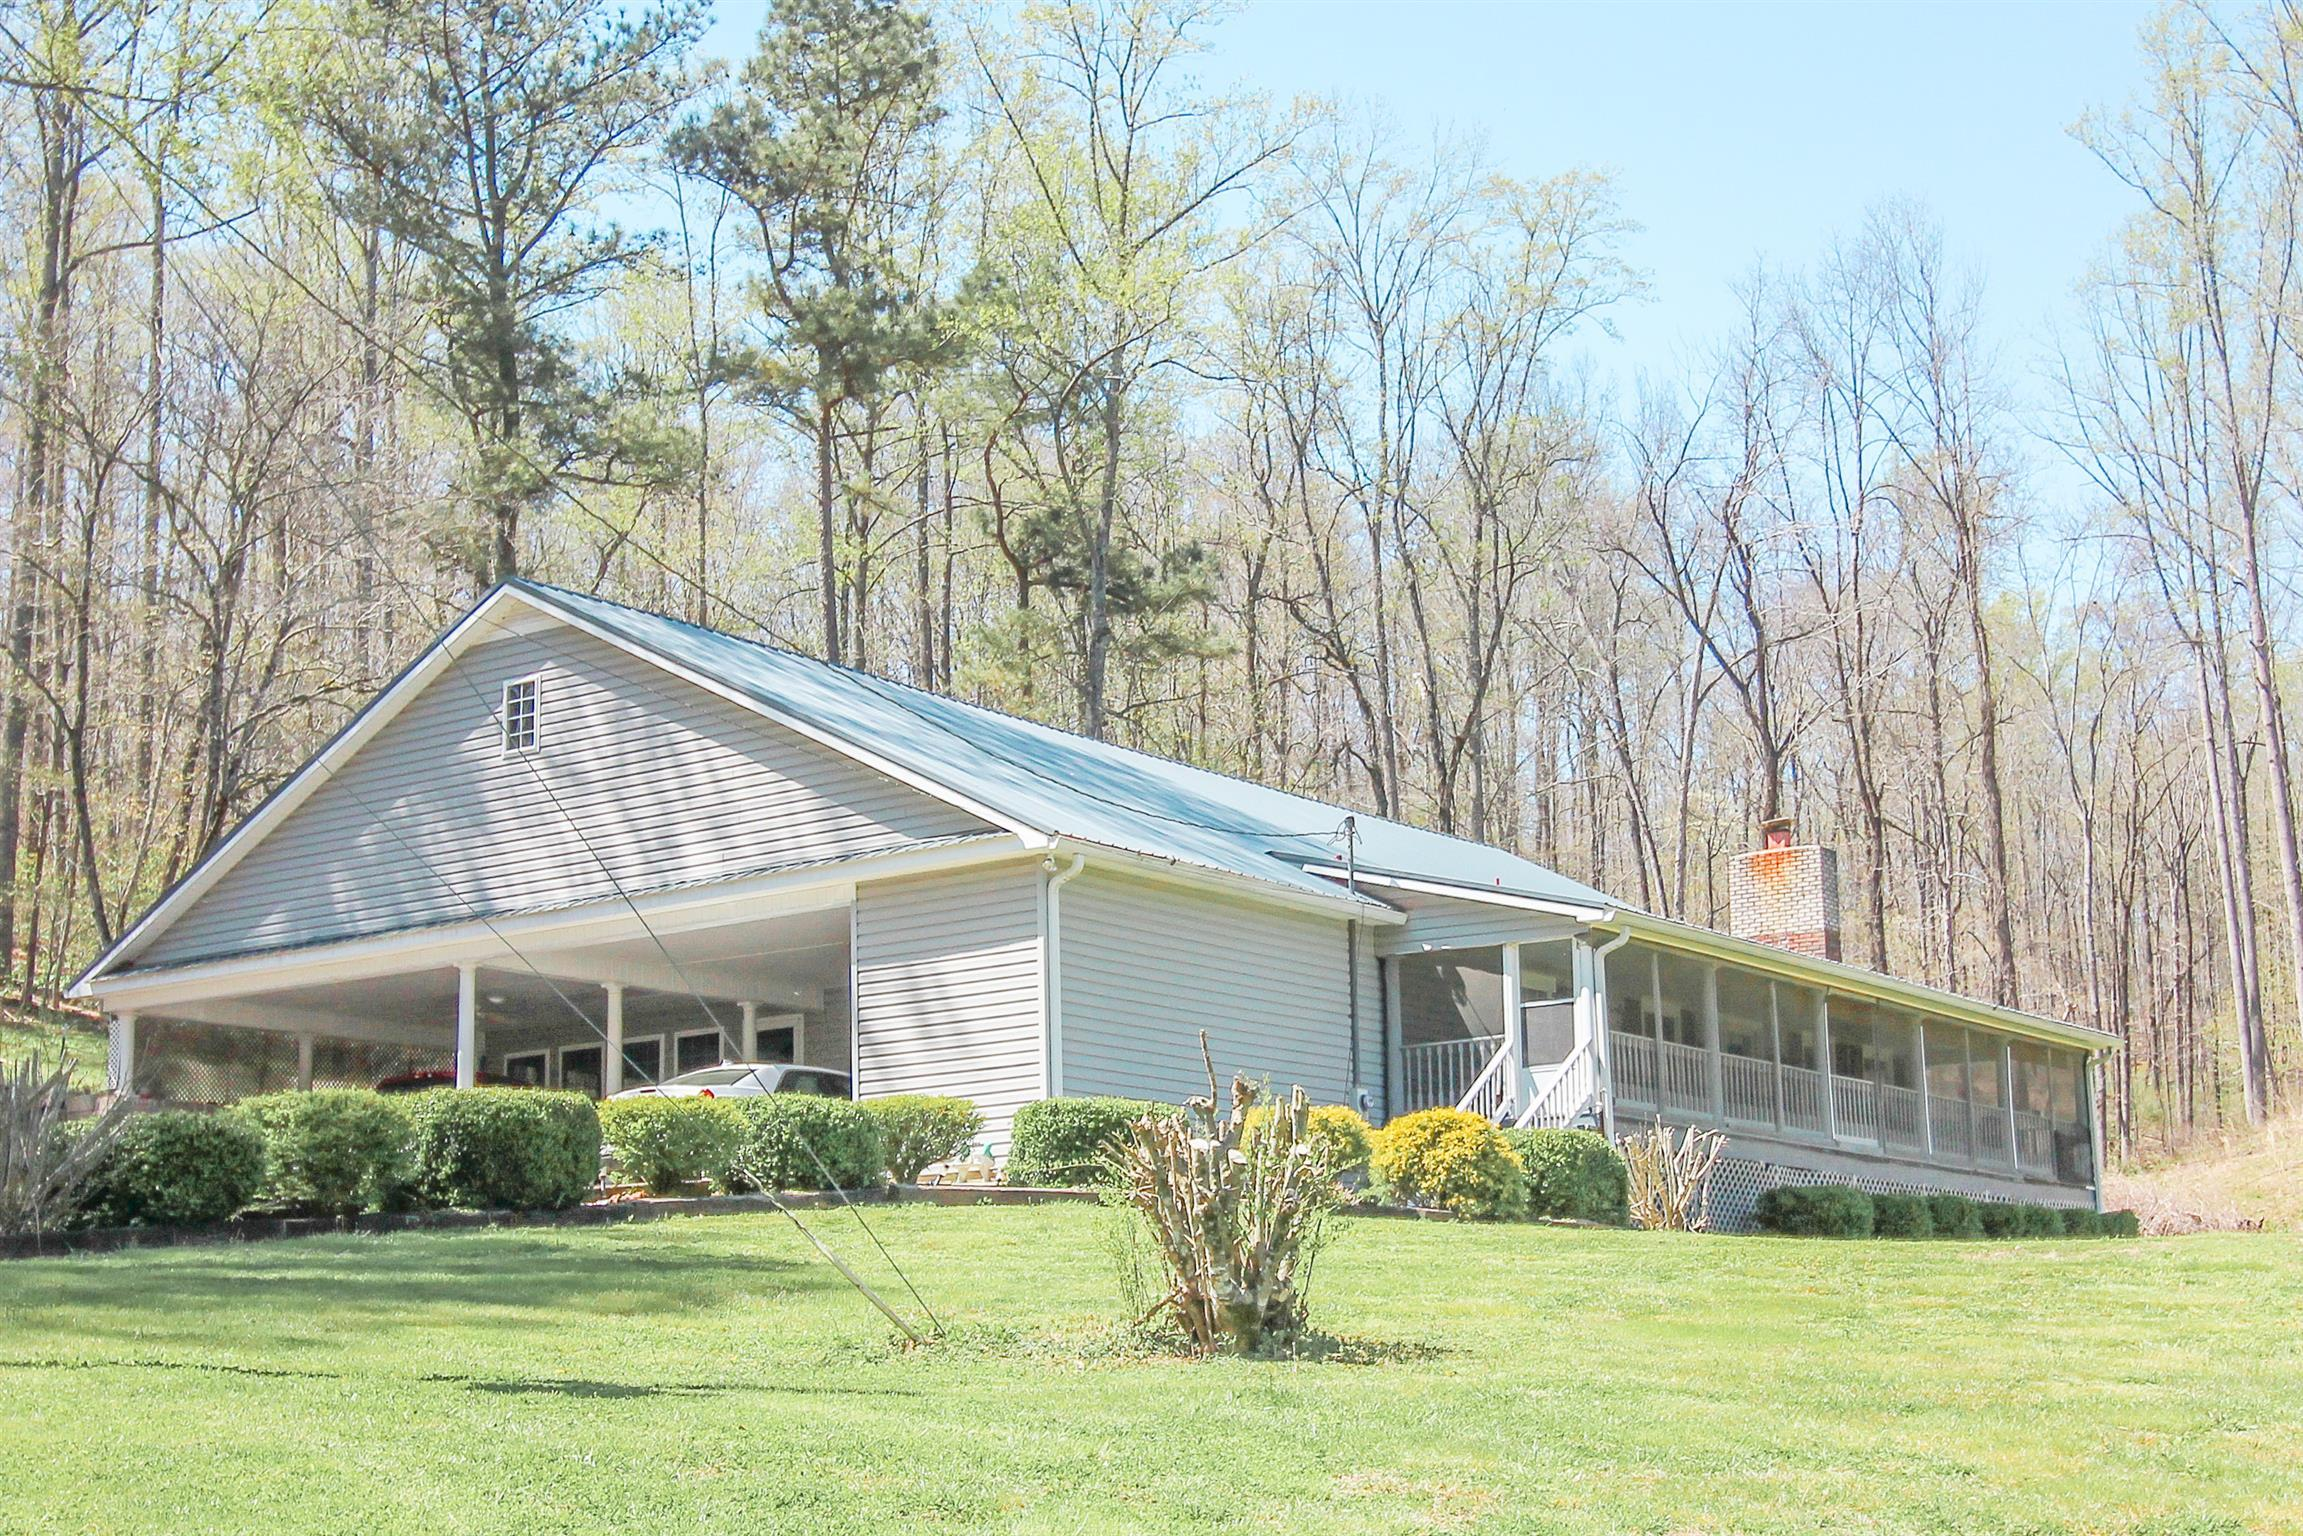 100 Dukes Ln, Kelso, TN 37348 - Kelso, TN real estate listing